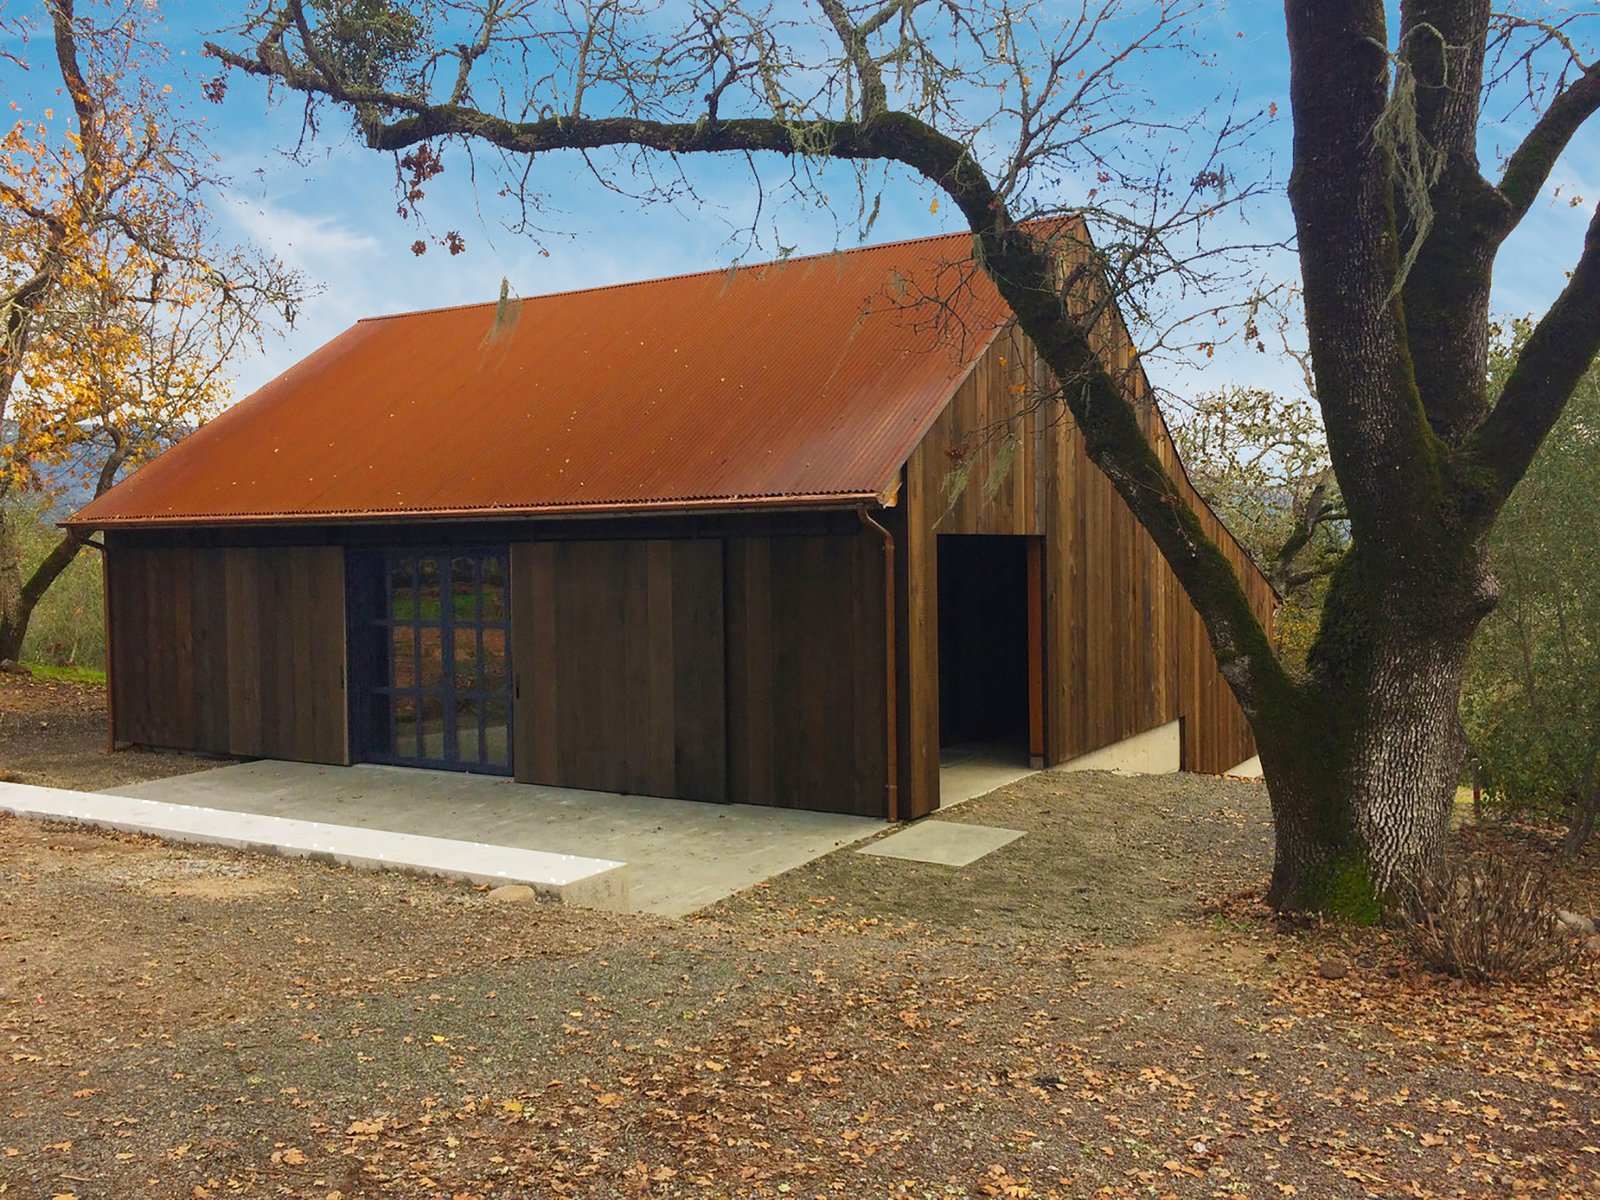 The barn's original framing was kept for its agricultural character. Faulkner Architects applied an exterior envelope of salvaged redwood and added a Cor-Ten steel roof that will patina over time.